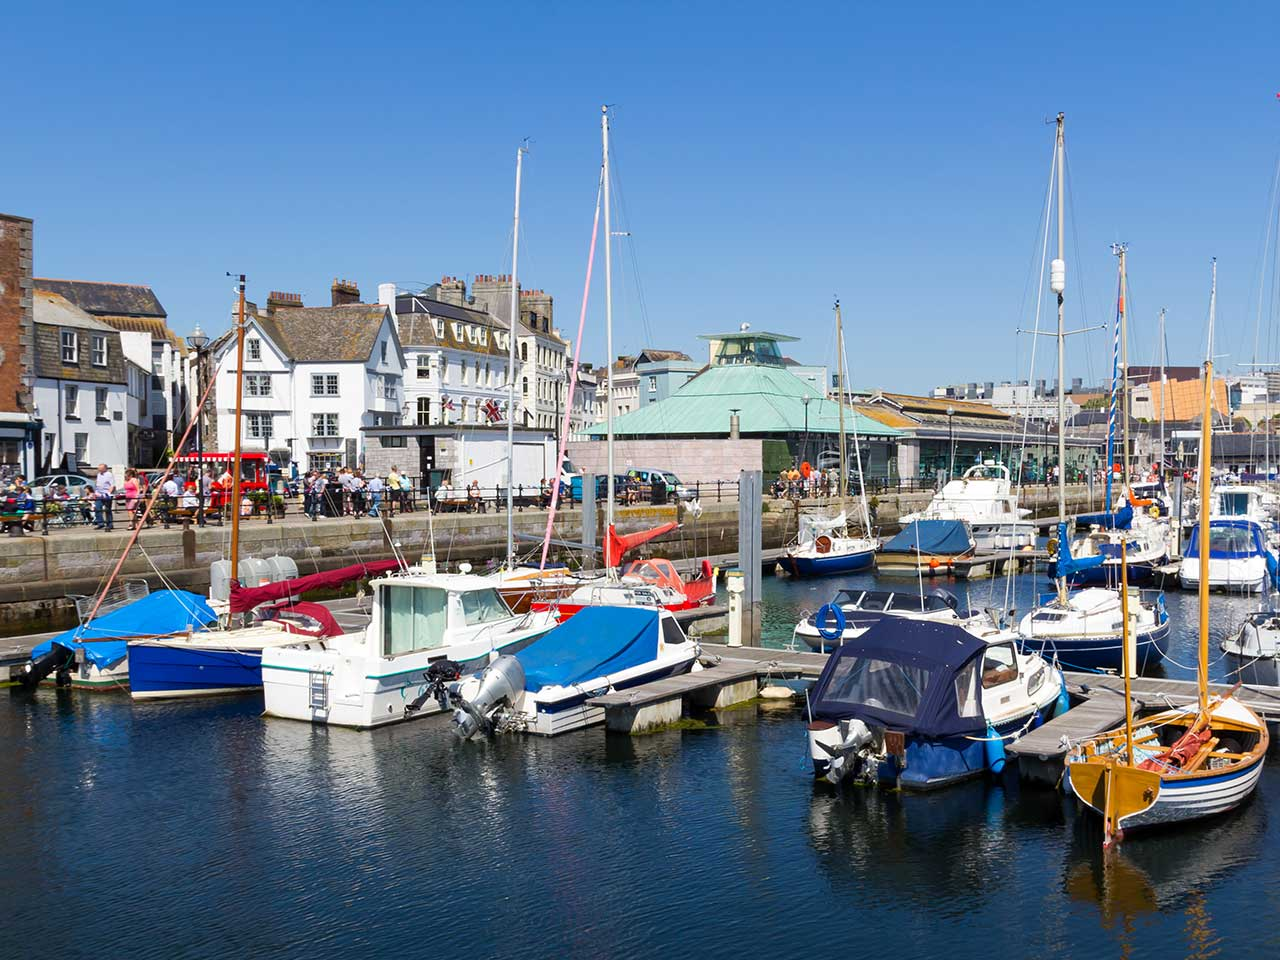 Plymouth's waterfront is a vibrant destination